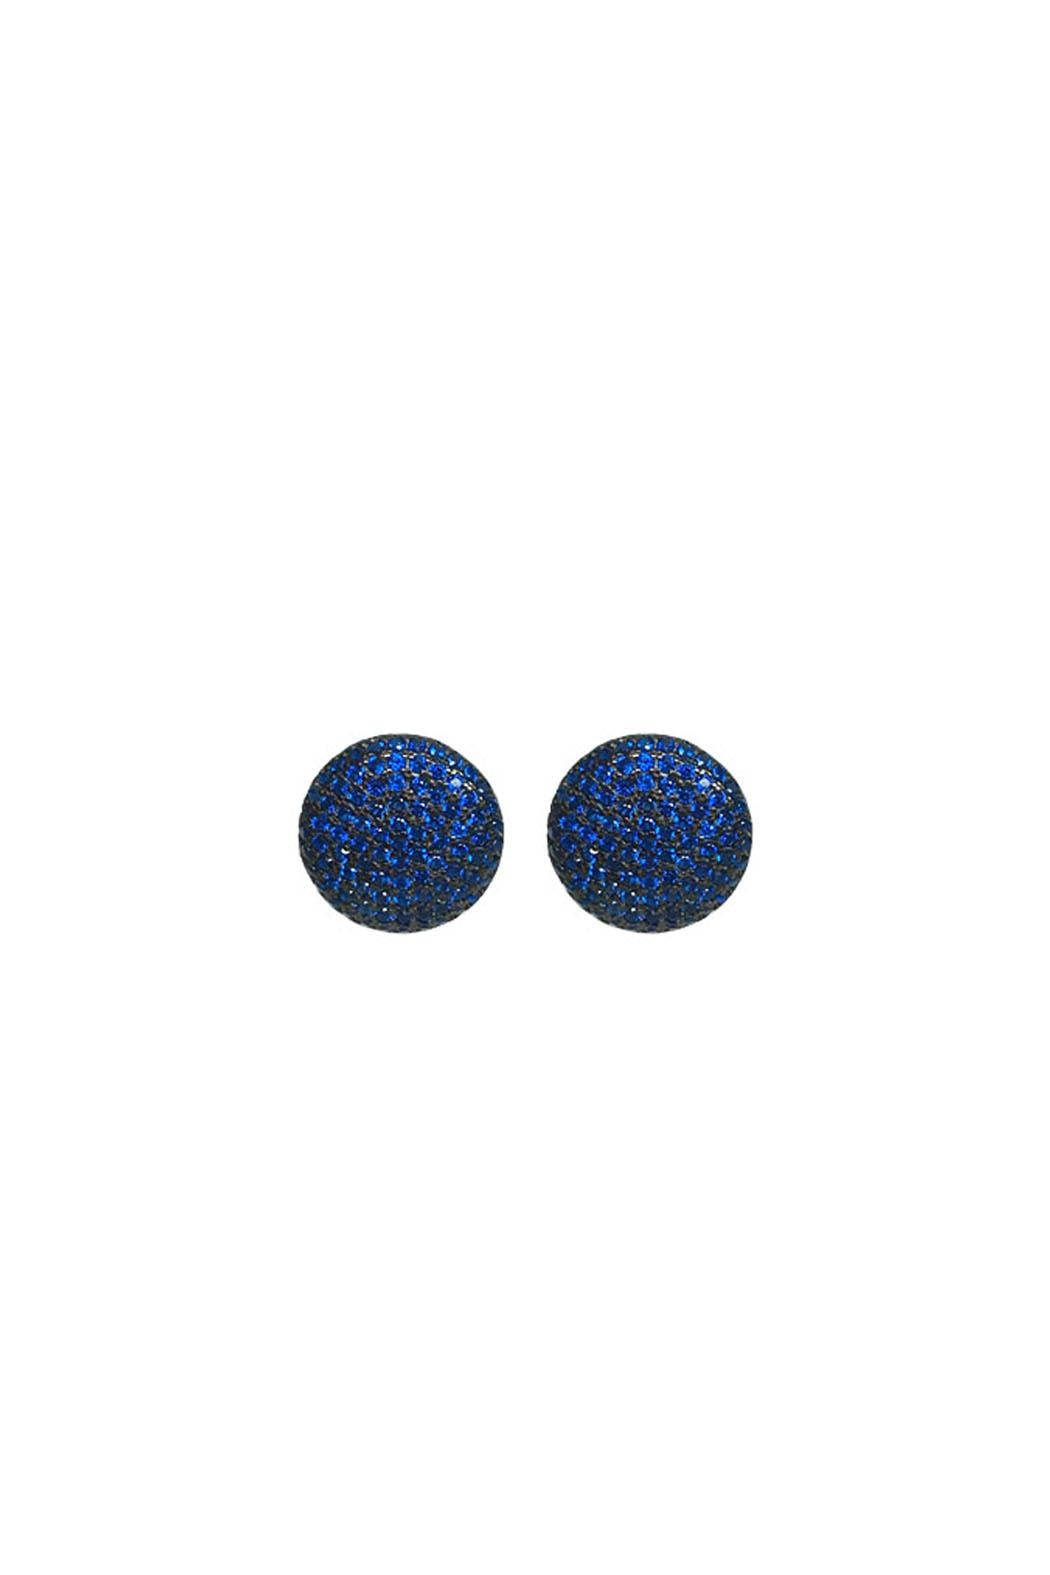 Wild Lilies Jewelry  Blue Pave Studs - Main Image